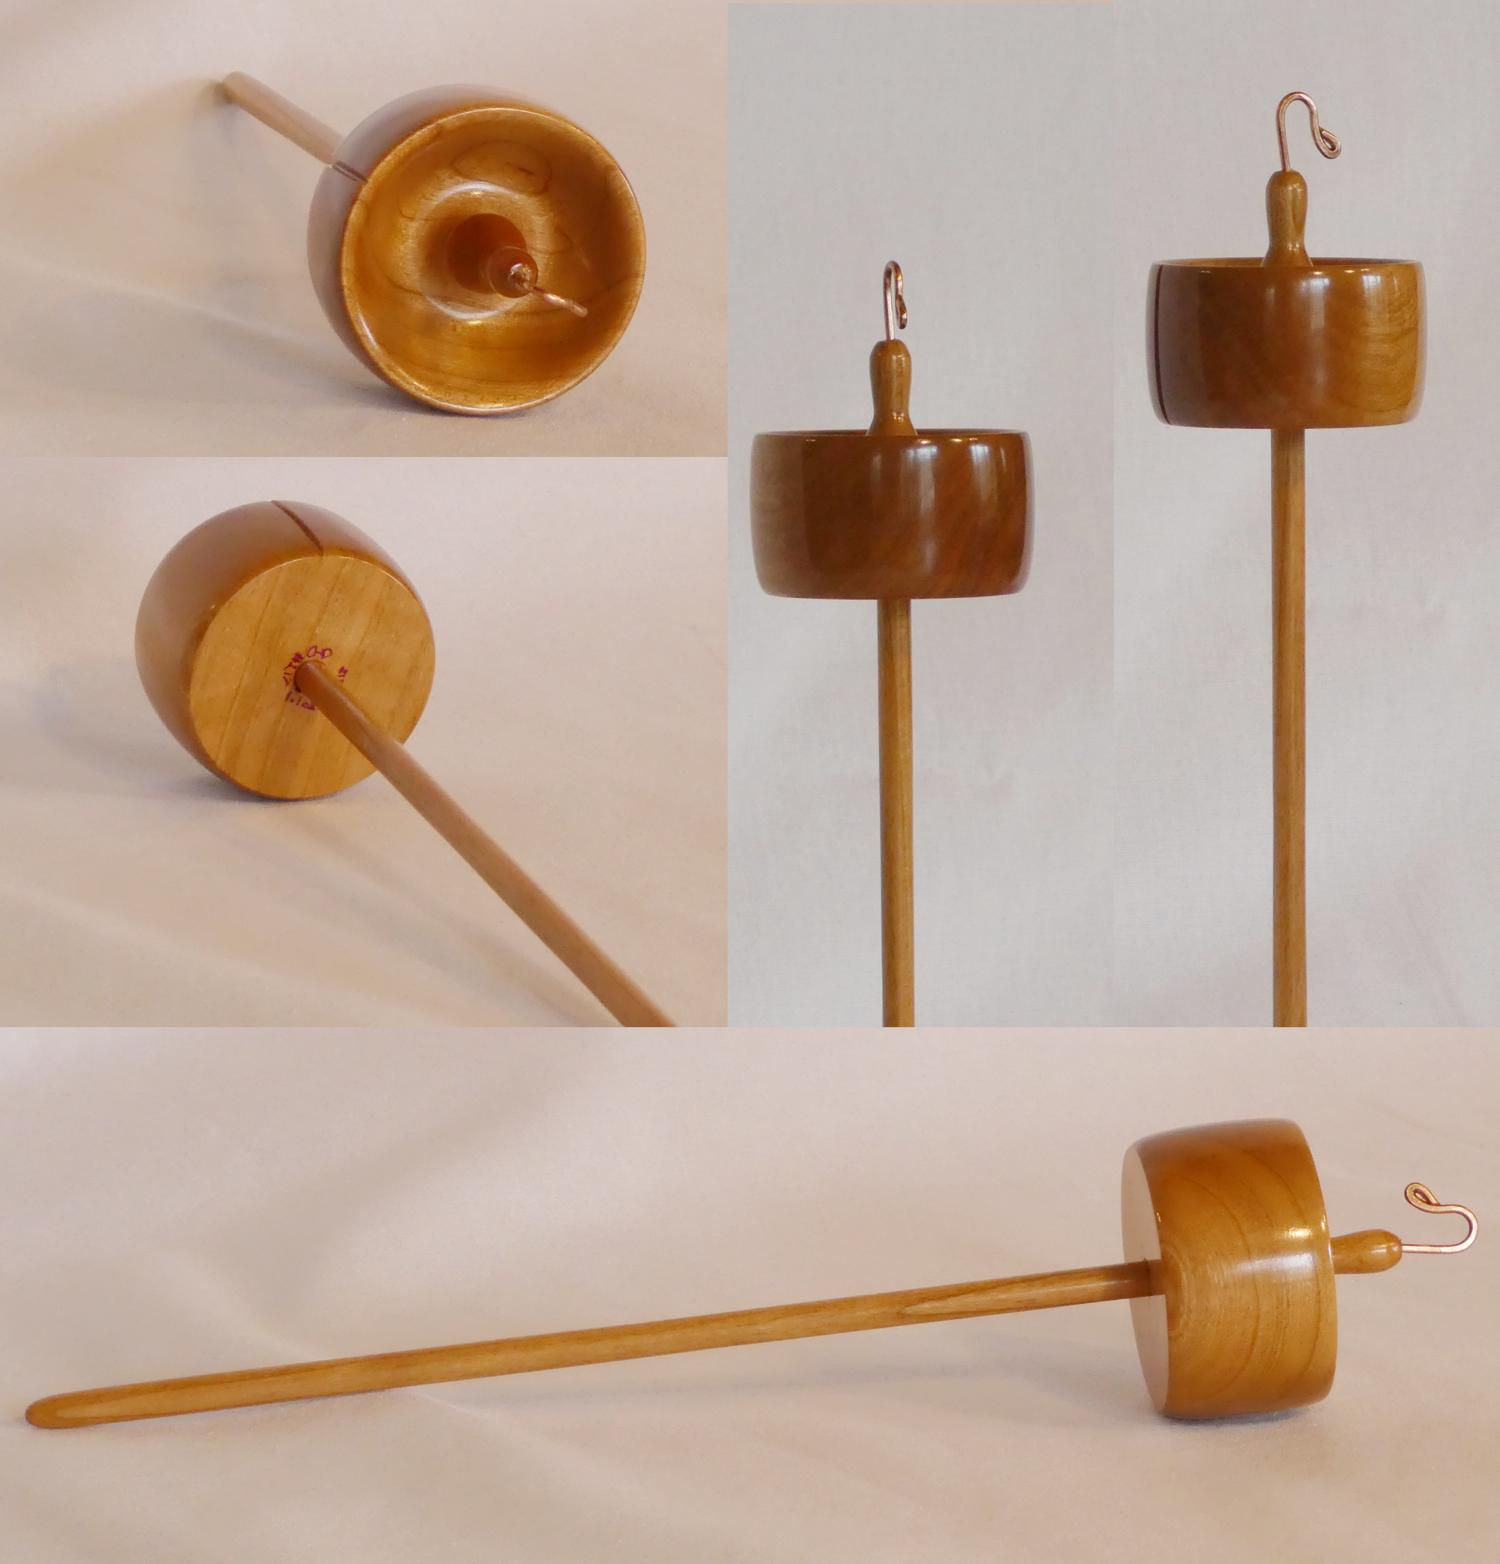 Top whorl drop spindle handturned from Cherry wood by Cynthia D. Haney of Cynthia Wood Spinner signed number 217 with notch and handmade hook.